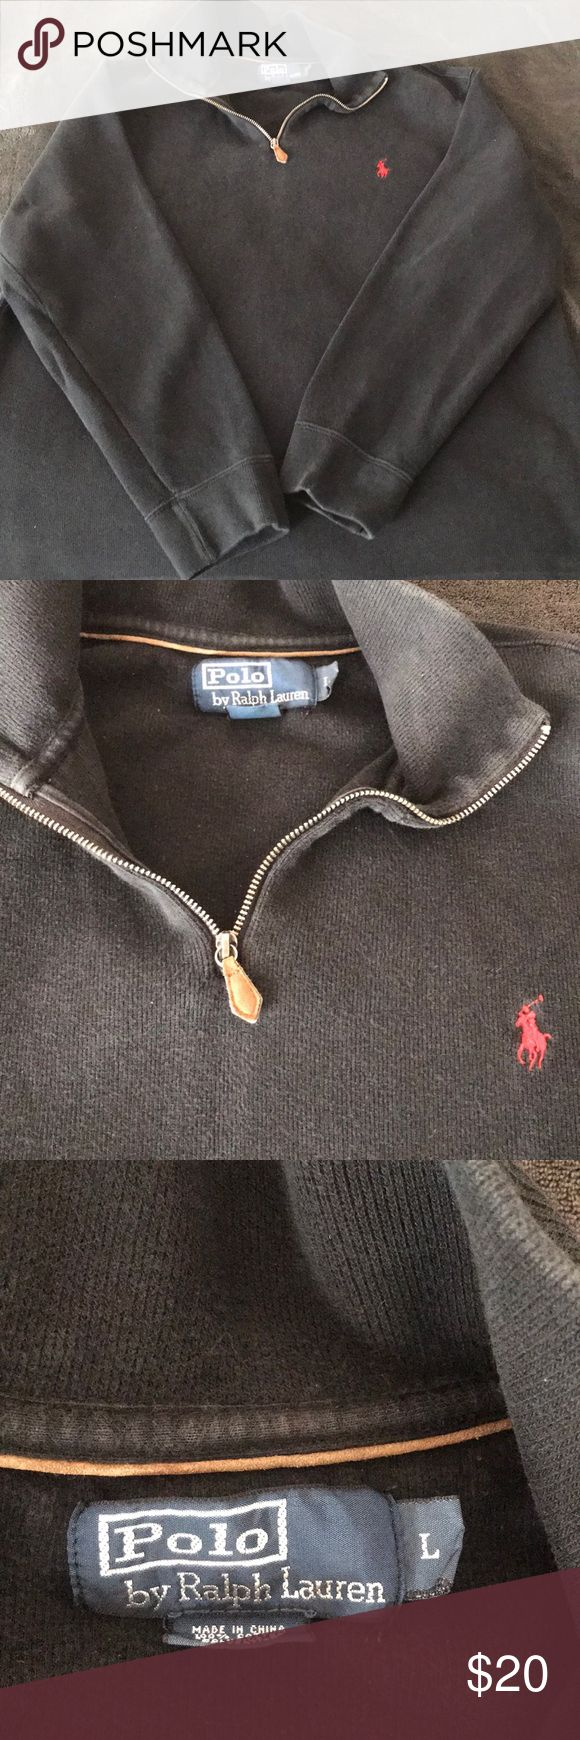 Polo Ralph Lauren Pullover Polo Ralph Lauren Black Pullover  Size Large Slight fading Polo by Ralph Lauren Sweaters Zip Up